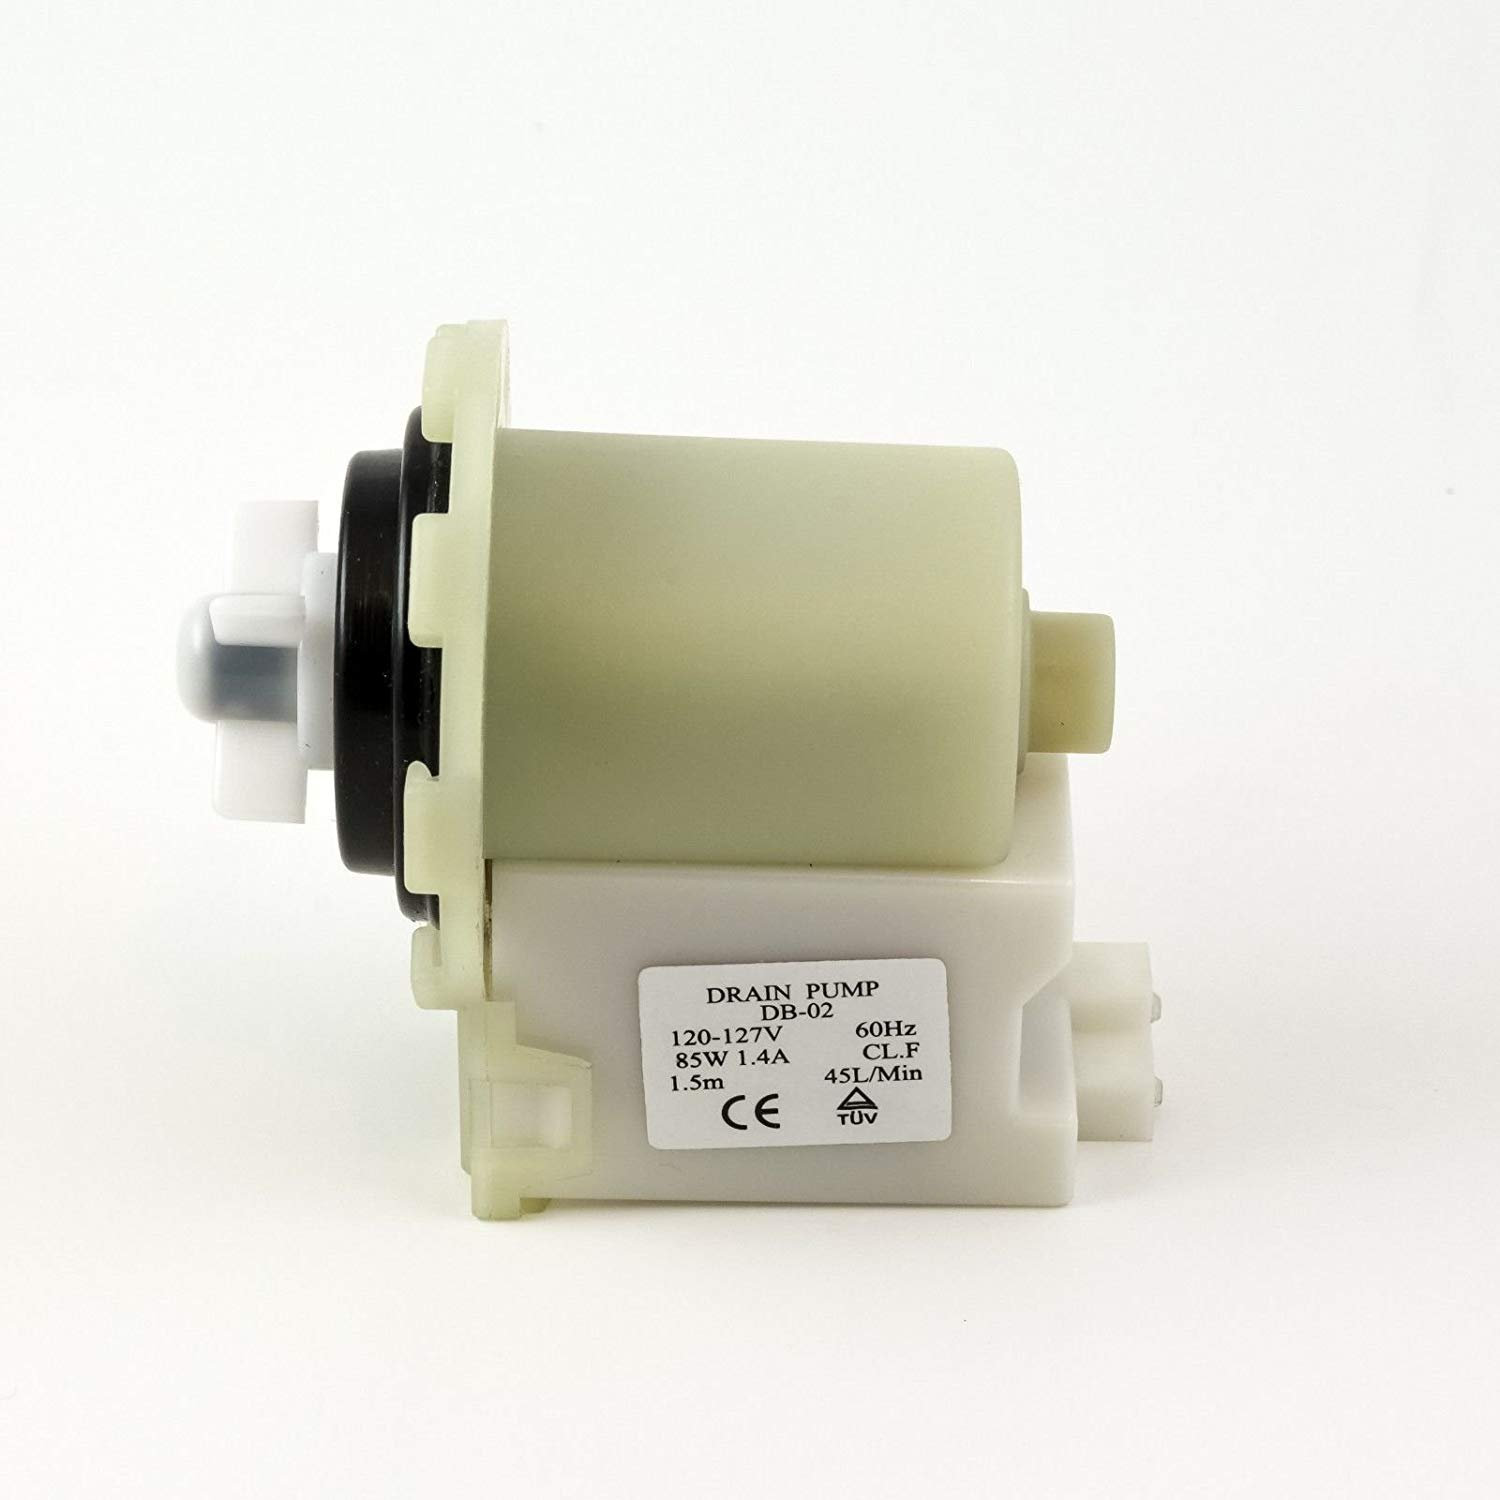 NEW Replacement Drain Pump for KENMORE WHIRLPOOL 8540024 W10130913 on samsung wiring diagrams, eaton wiring diagrams, sears wiring diagrams, gibson wiring diagrams, craftsman wiring diagrams, kitchenaid wiring diagrams, panasonic wiring diagrams, buckley wiring diagrams, hotpoint wiring diagrams, whirlpool wiring diagrams, hobart wiring diagrams, westinghouse wiring diagrams, ge wiring diagrams, maytag wiring diagrams, dacor wiring diagrams, speed queen wiring diagrams, amana wiring diagrams, frigidaire wiring diagrams, viking wiring diagrams, lg wiring diagrams,